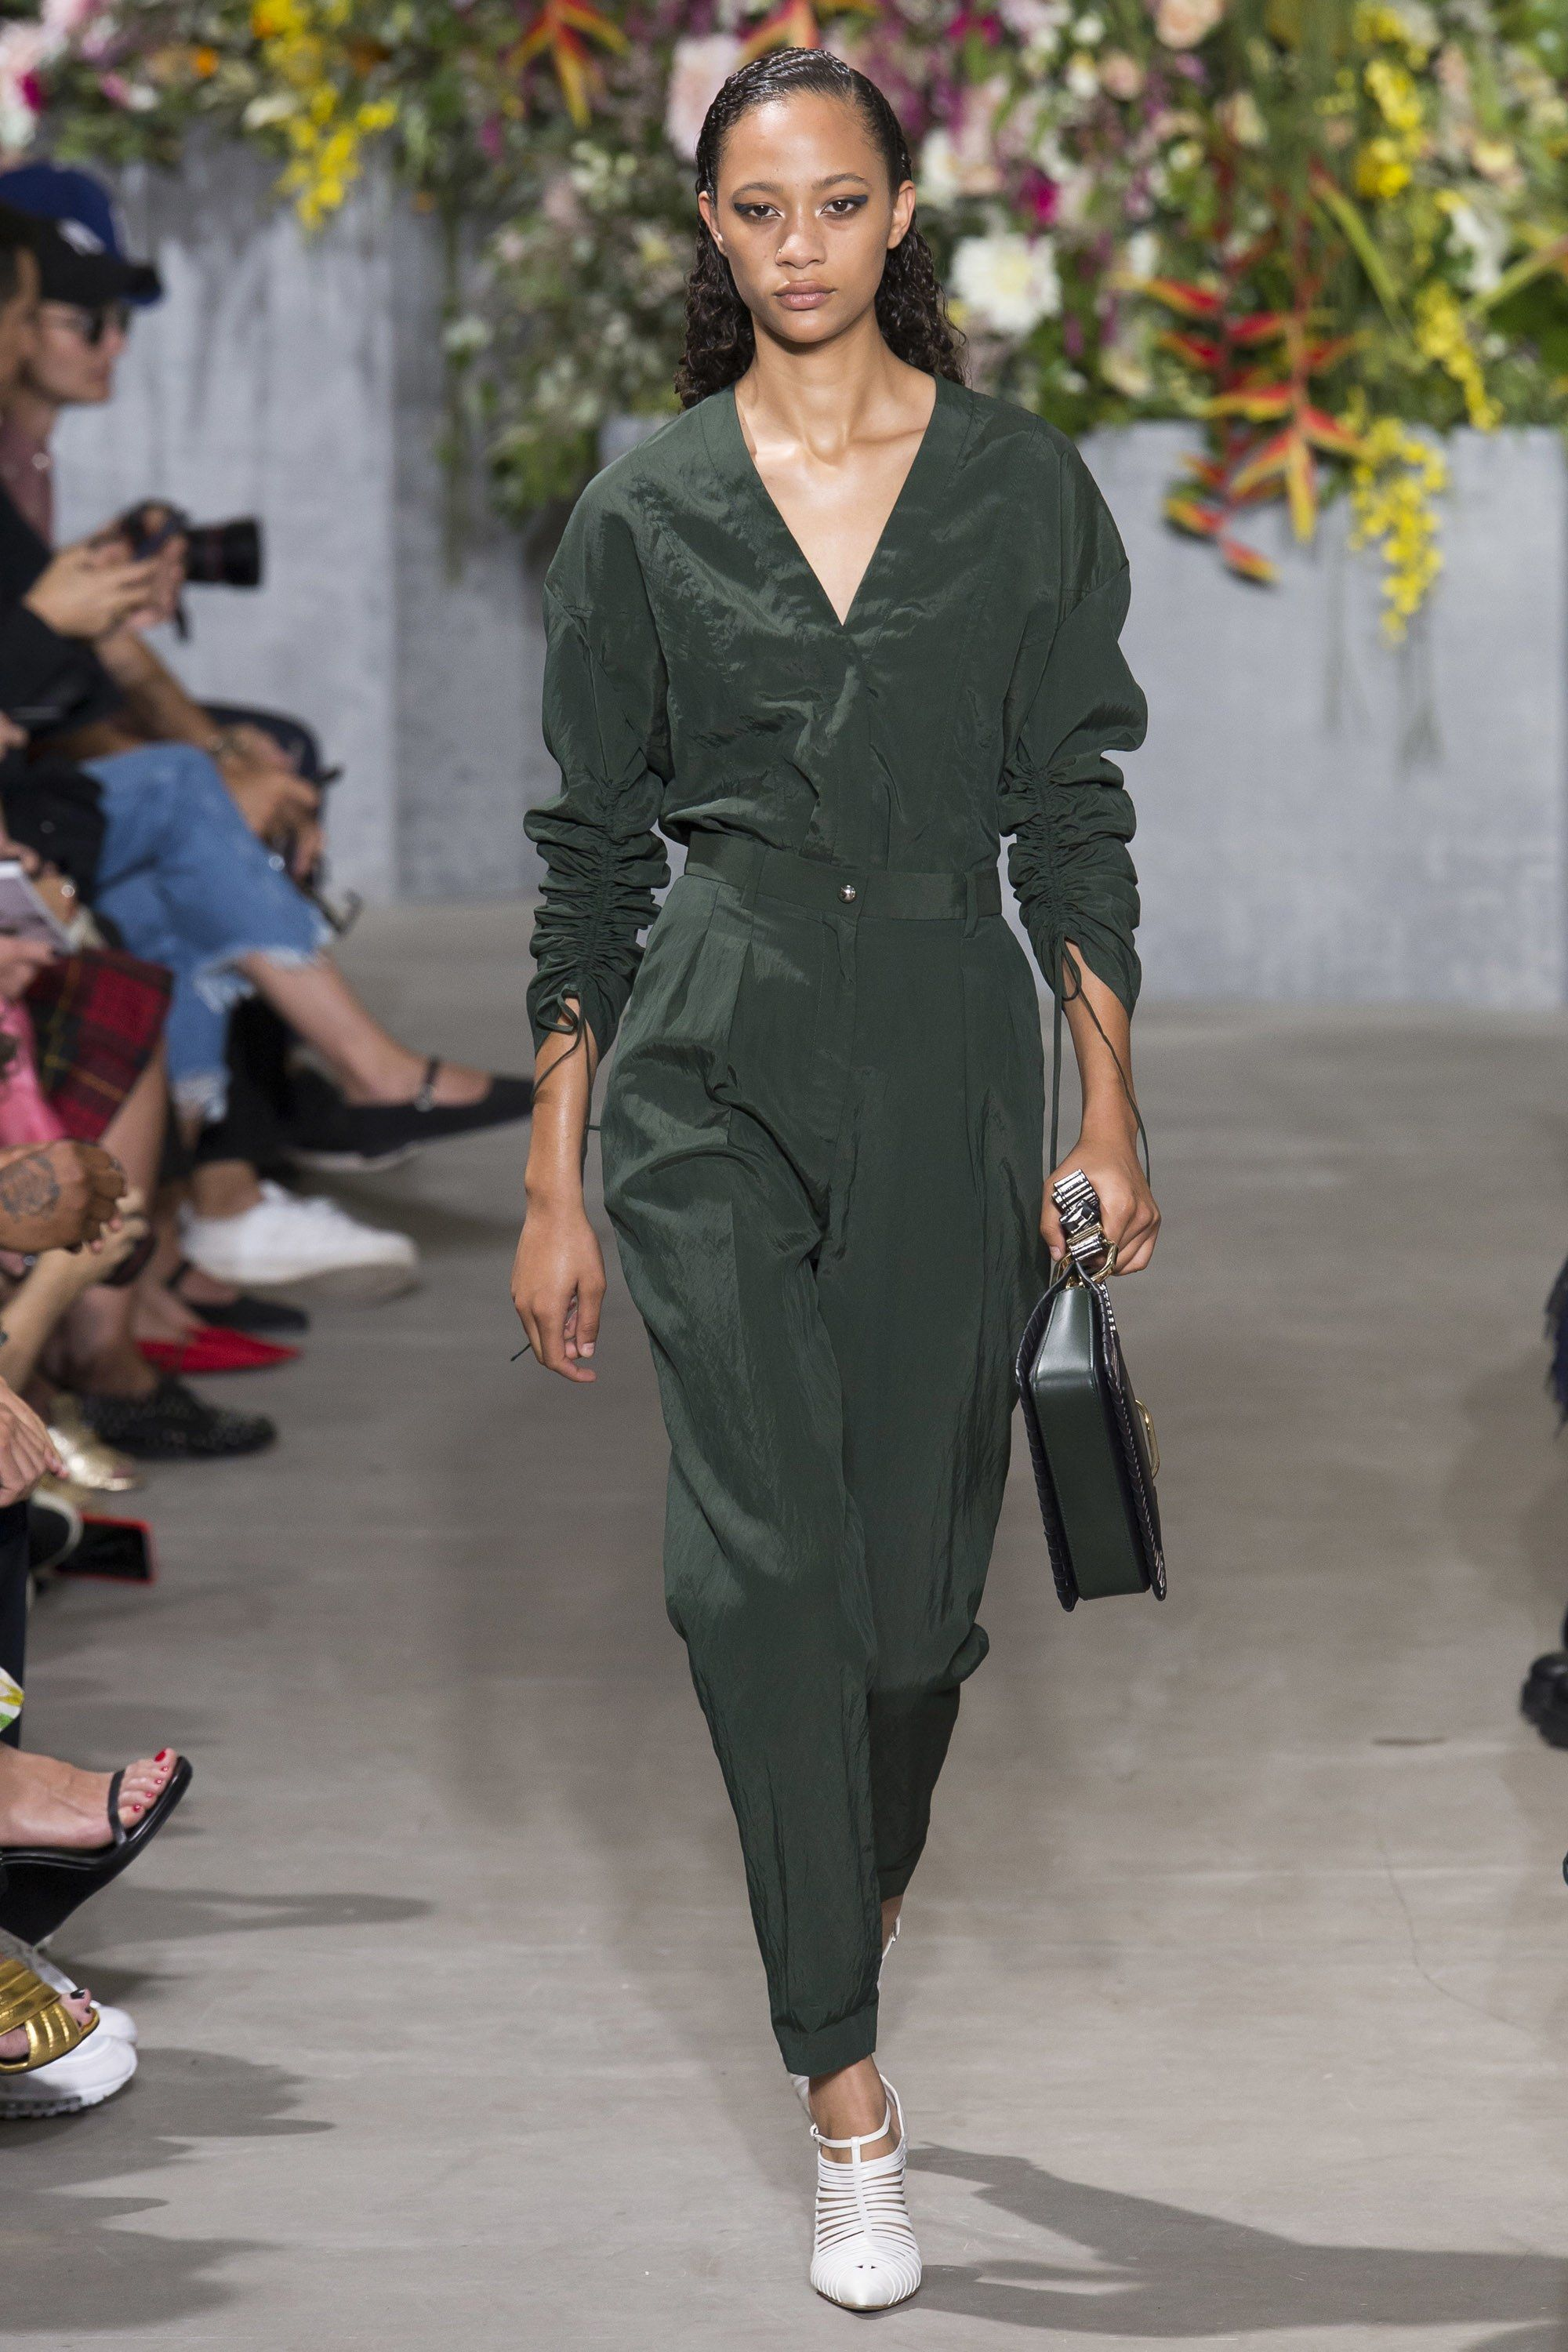 Jason Wu Spring 2018 Ready-to-Wear Undefined Photos - Vogue